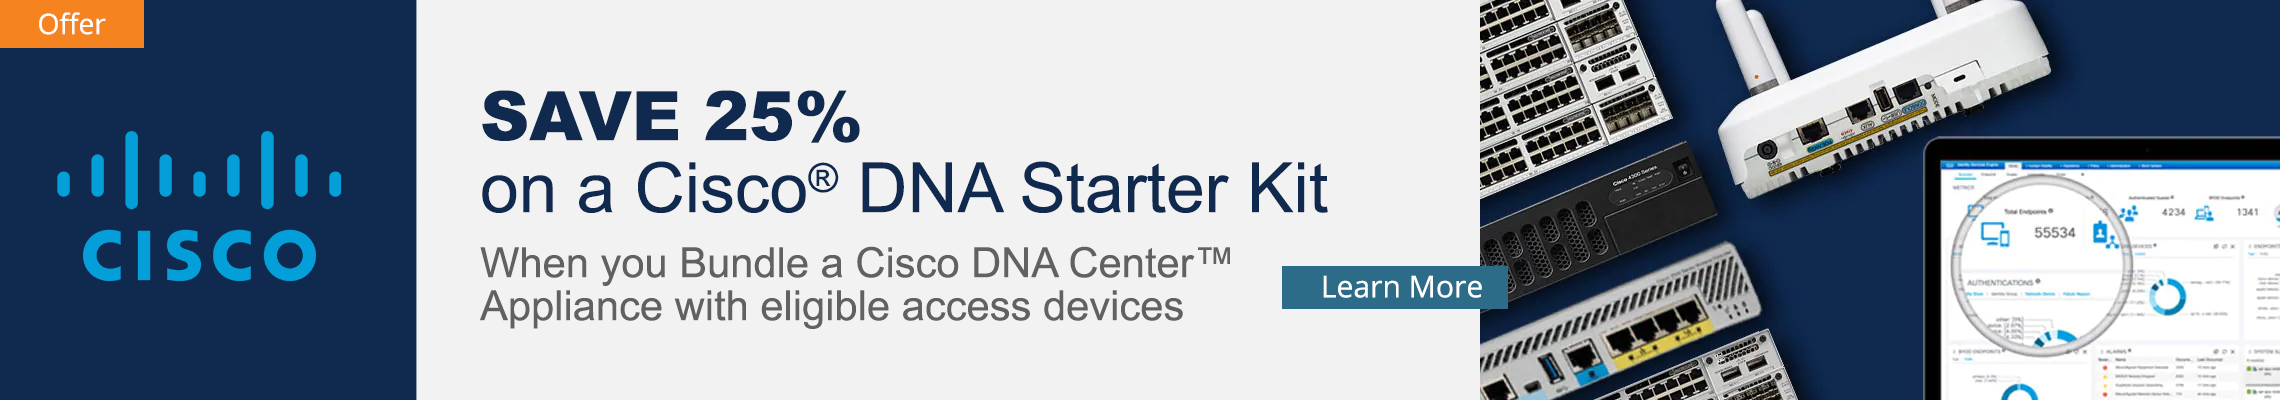 Cisco DNA Kit Promo Home Banner